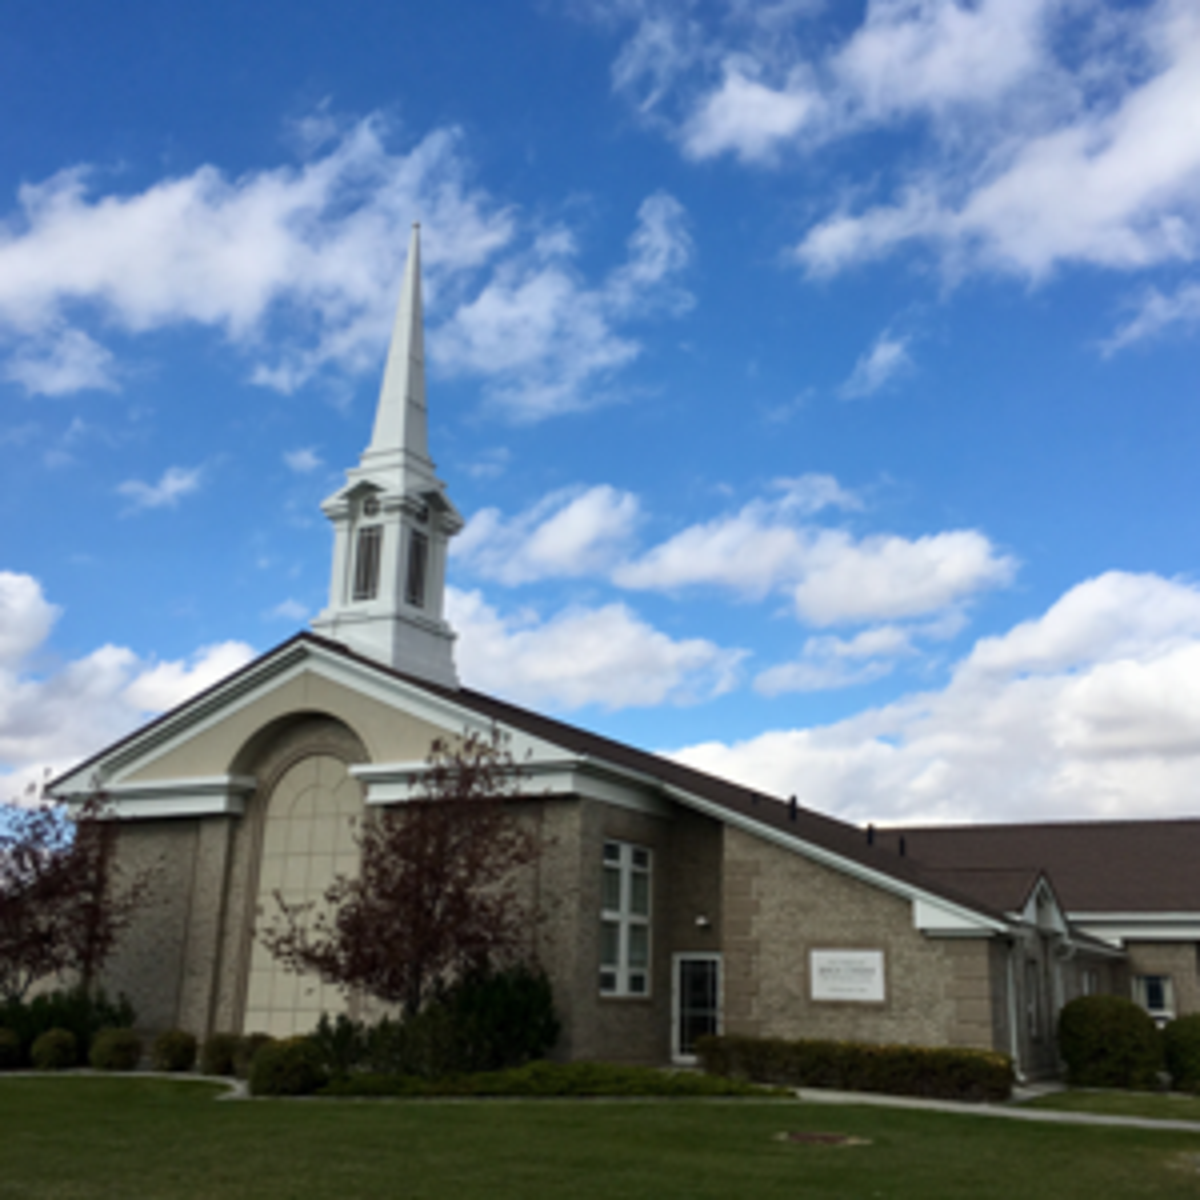 Chaple where the Young Single Adults Meet